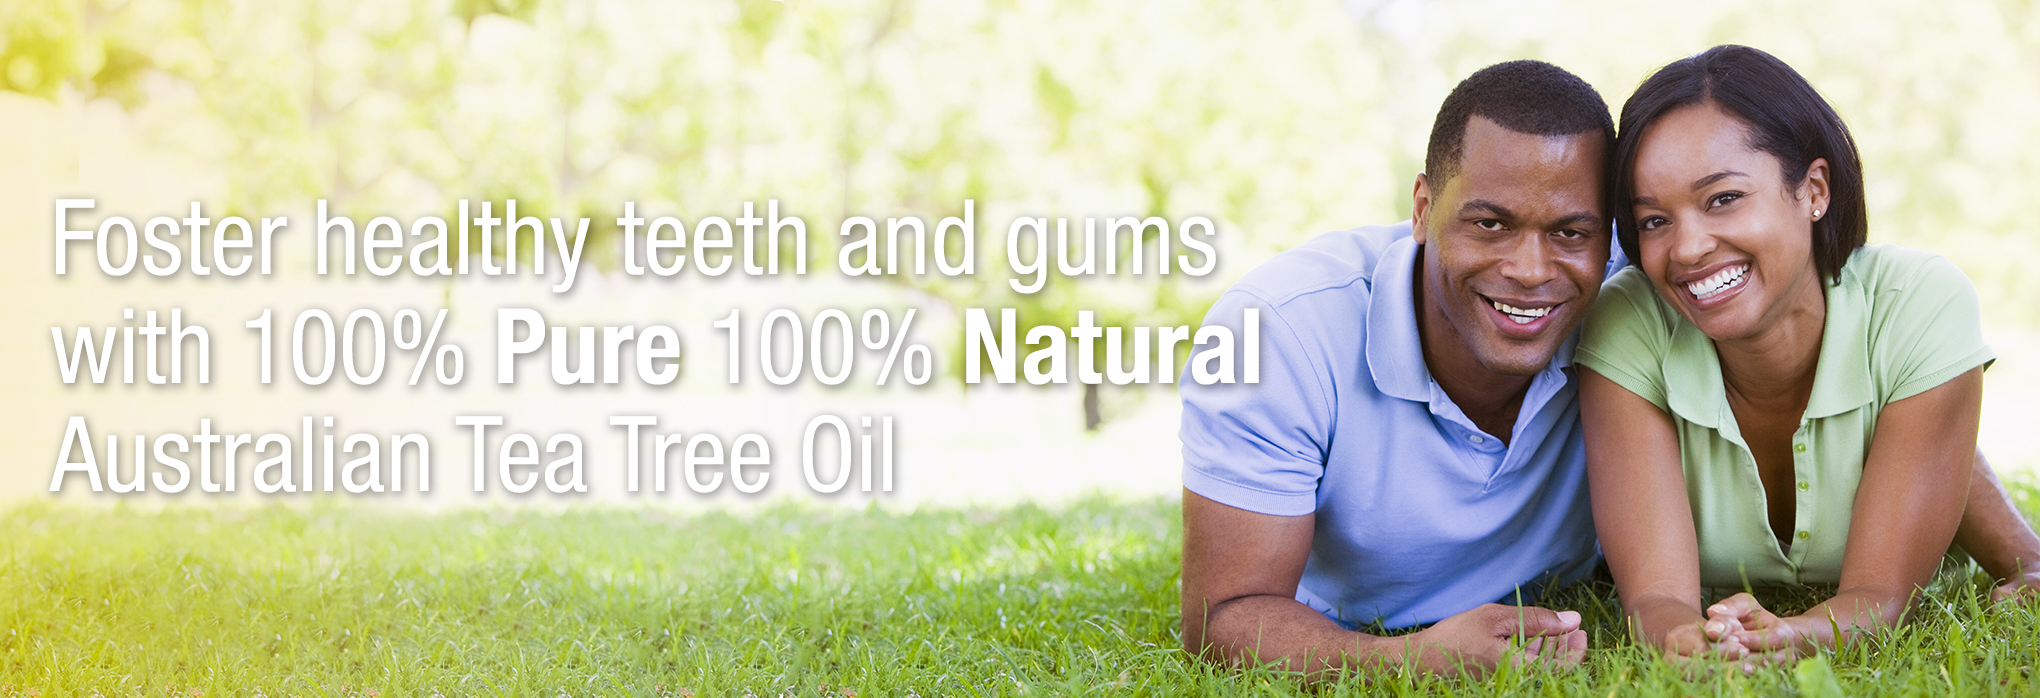 Foster healthy teeth and gums with 100% pure 100% natural Australian Tea Tree Oil